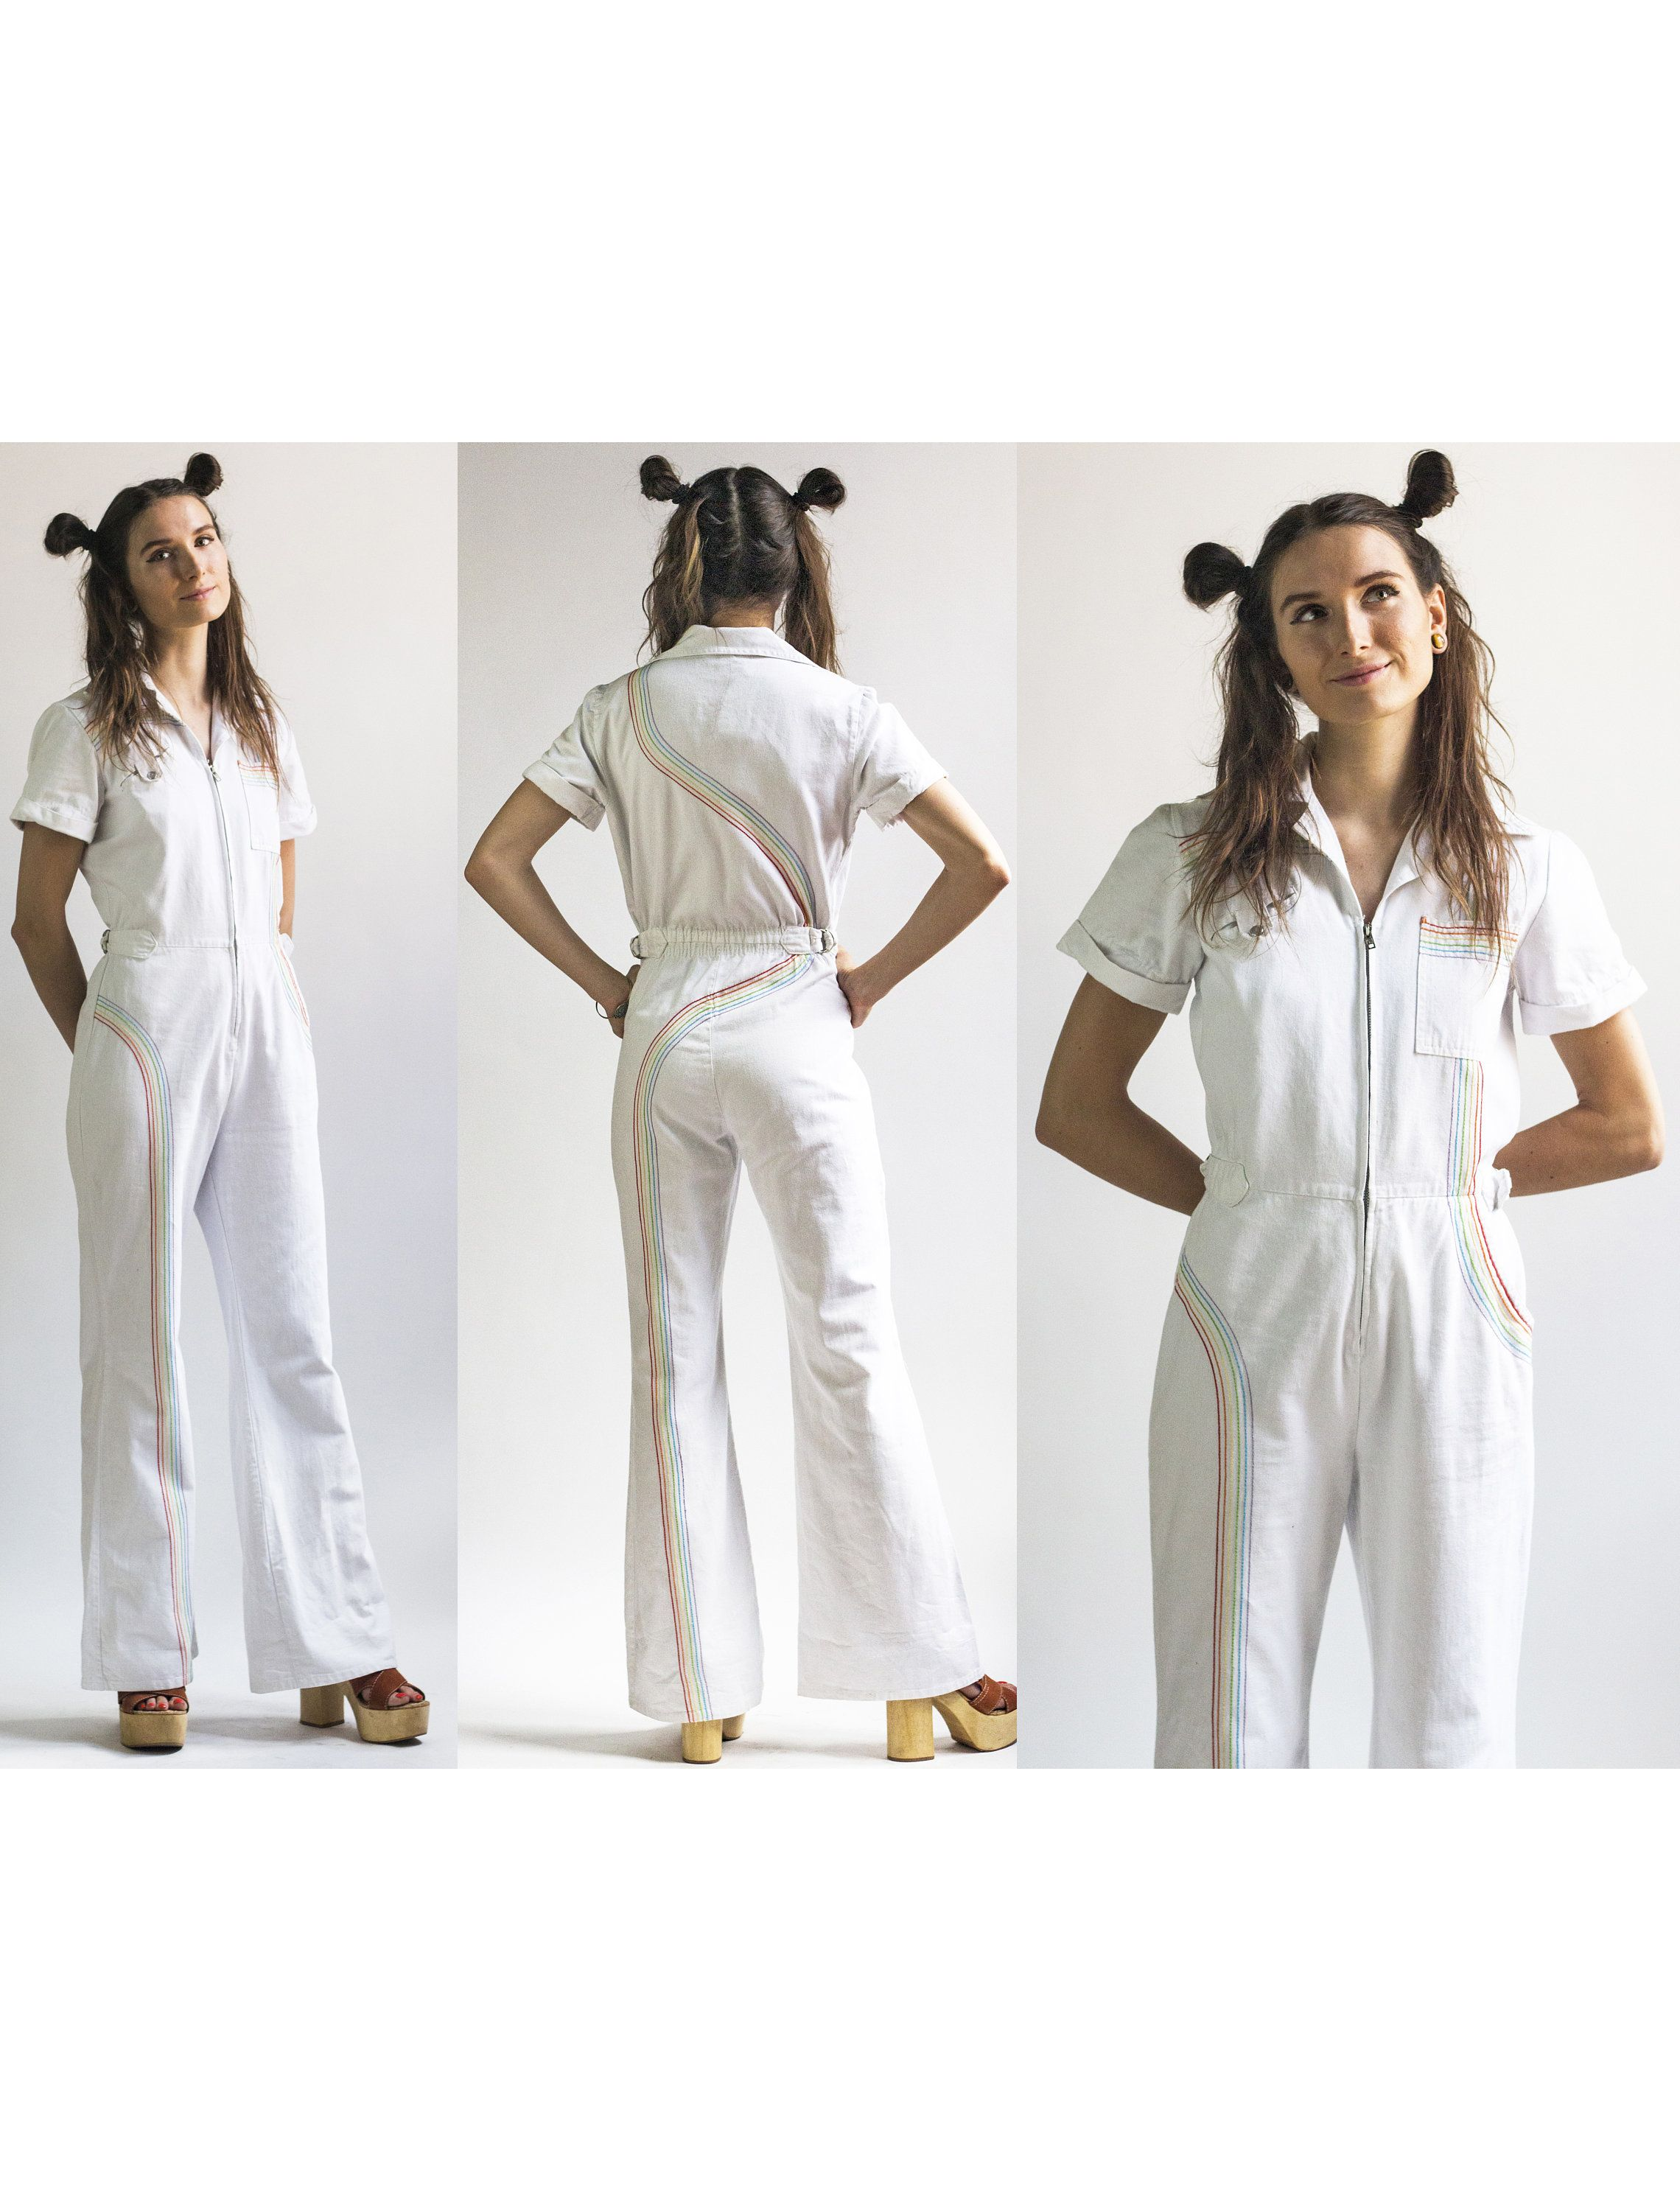 1087d9671037 1970s White Denim Rainbow Stitched Wide Leg Faded Glory Jumpsuit    Vintage  70s Denim Front Zip Short Sleeve Jumpsuit    Size S Small by AveryVintageShop  on ...